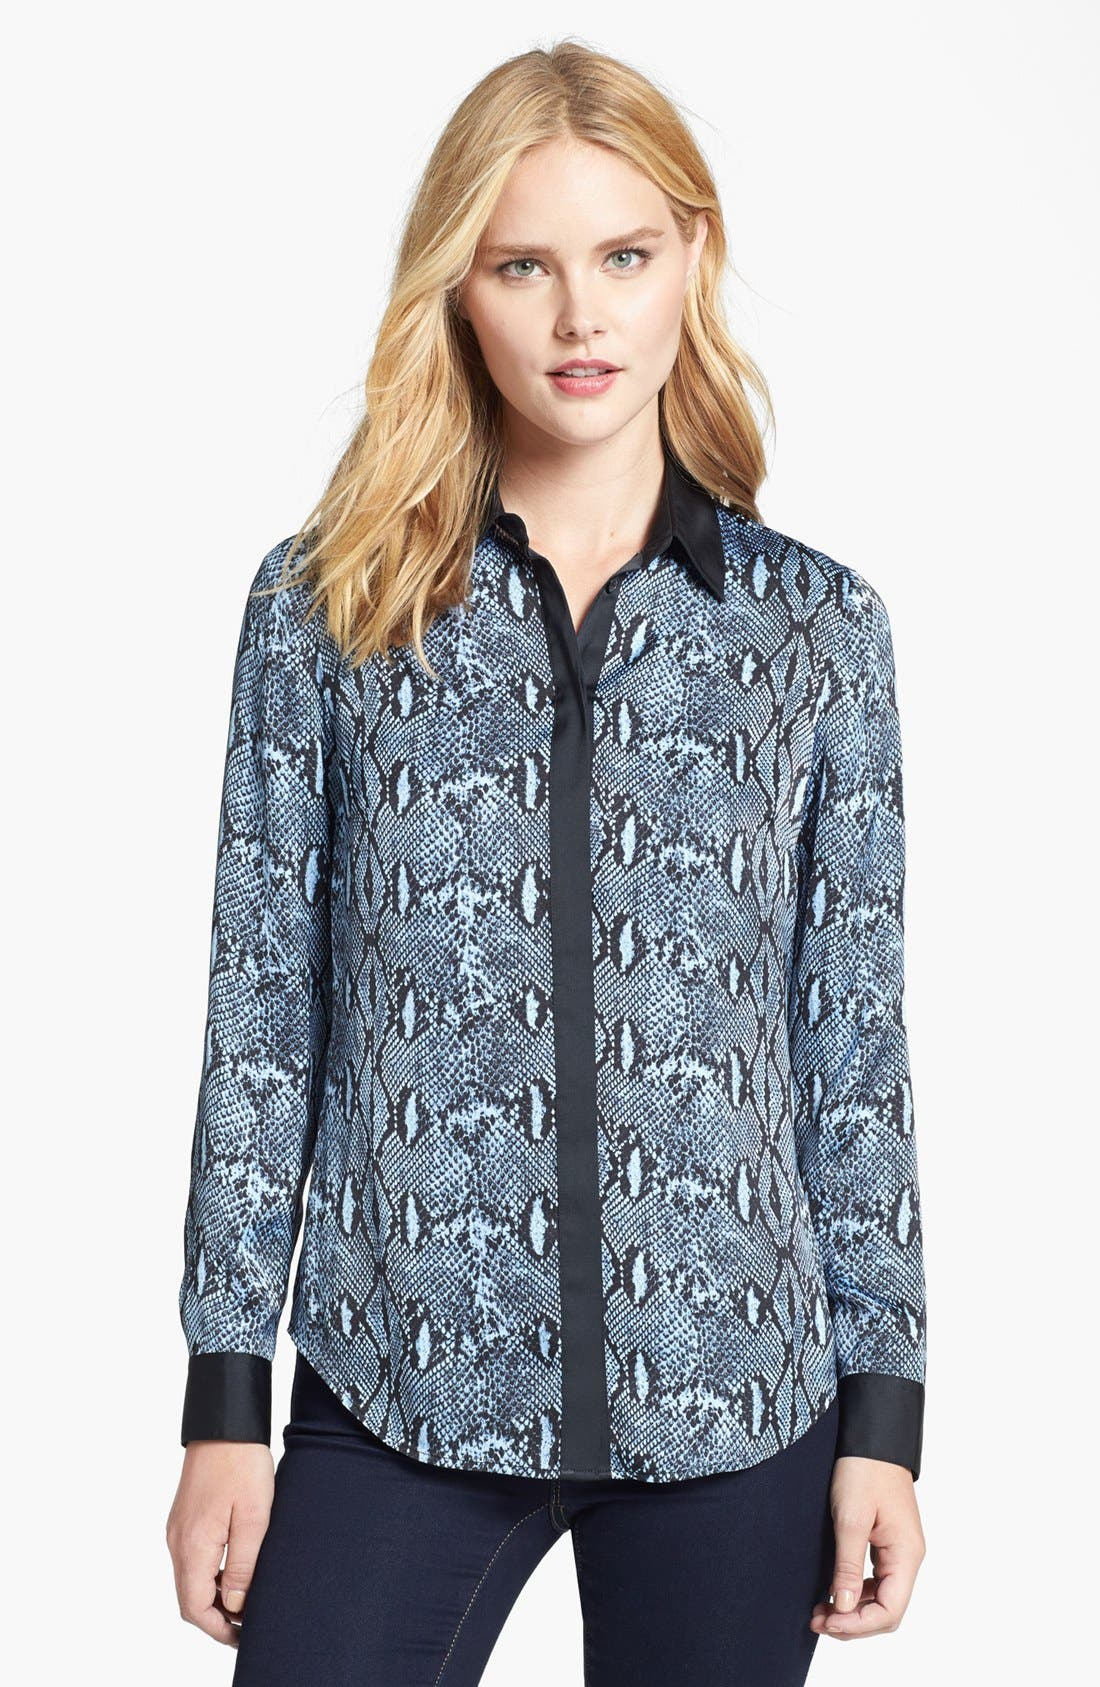 Alternate Image 1 Selected - MICHAEL Michael Kors Contrast Trim Print Blouse